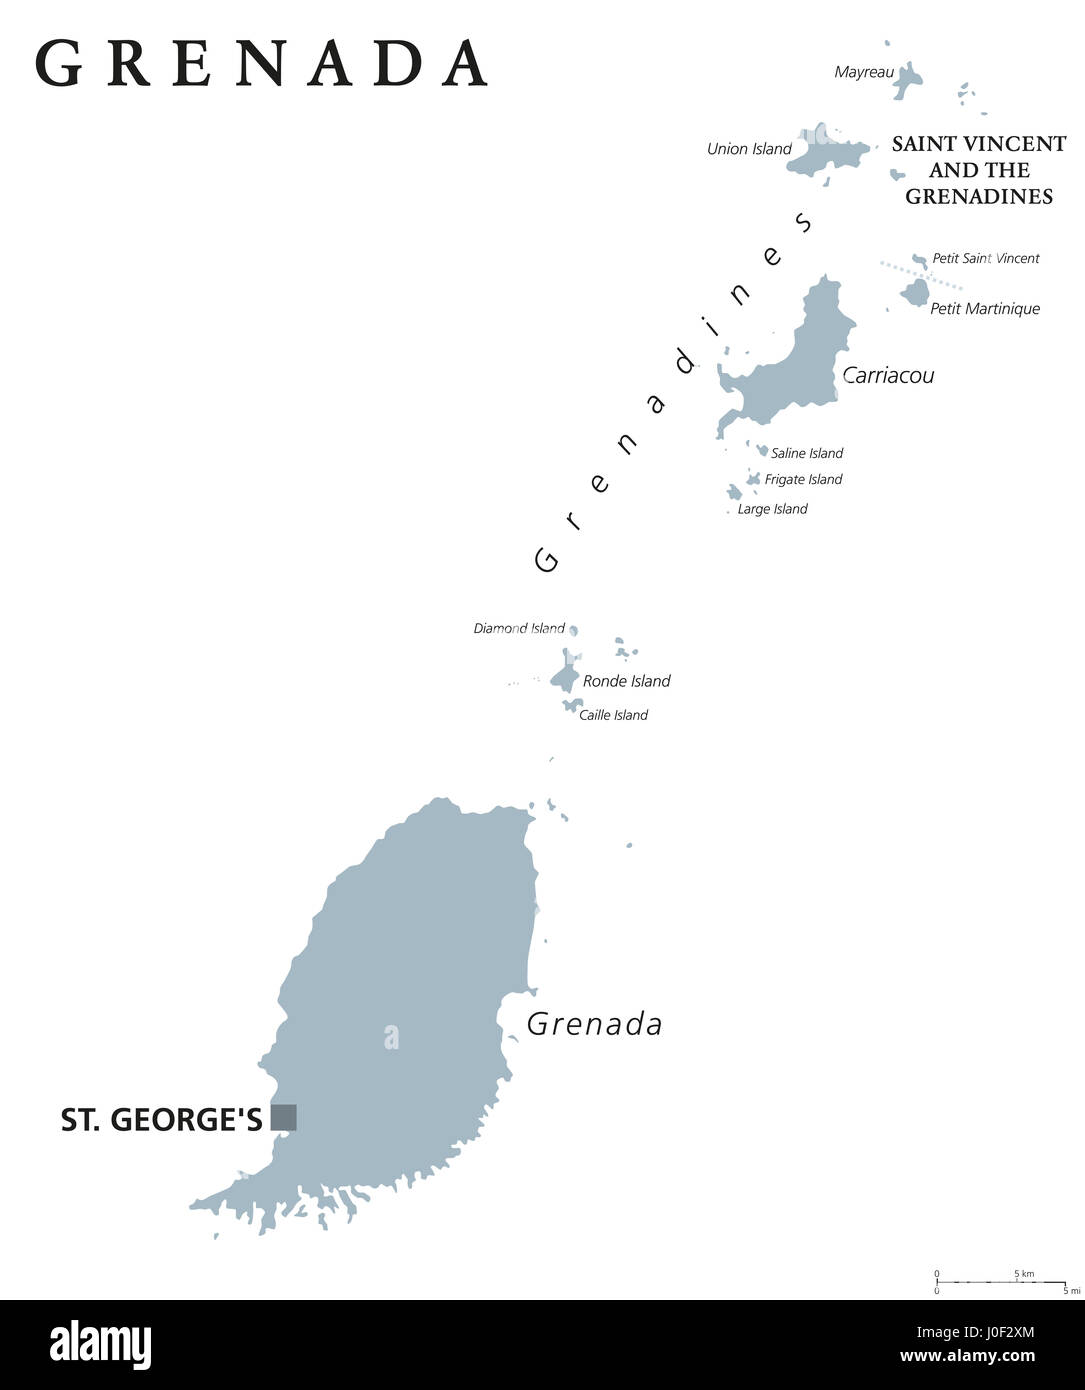 Grenada Political Map With Capital St Georges Caribbean Islands - Map of grenada caribbean islands